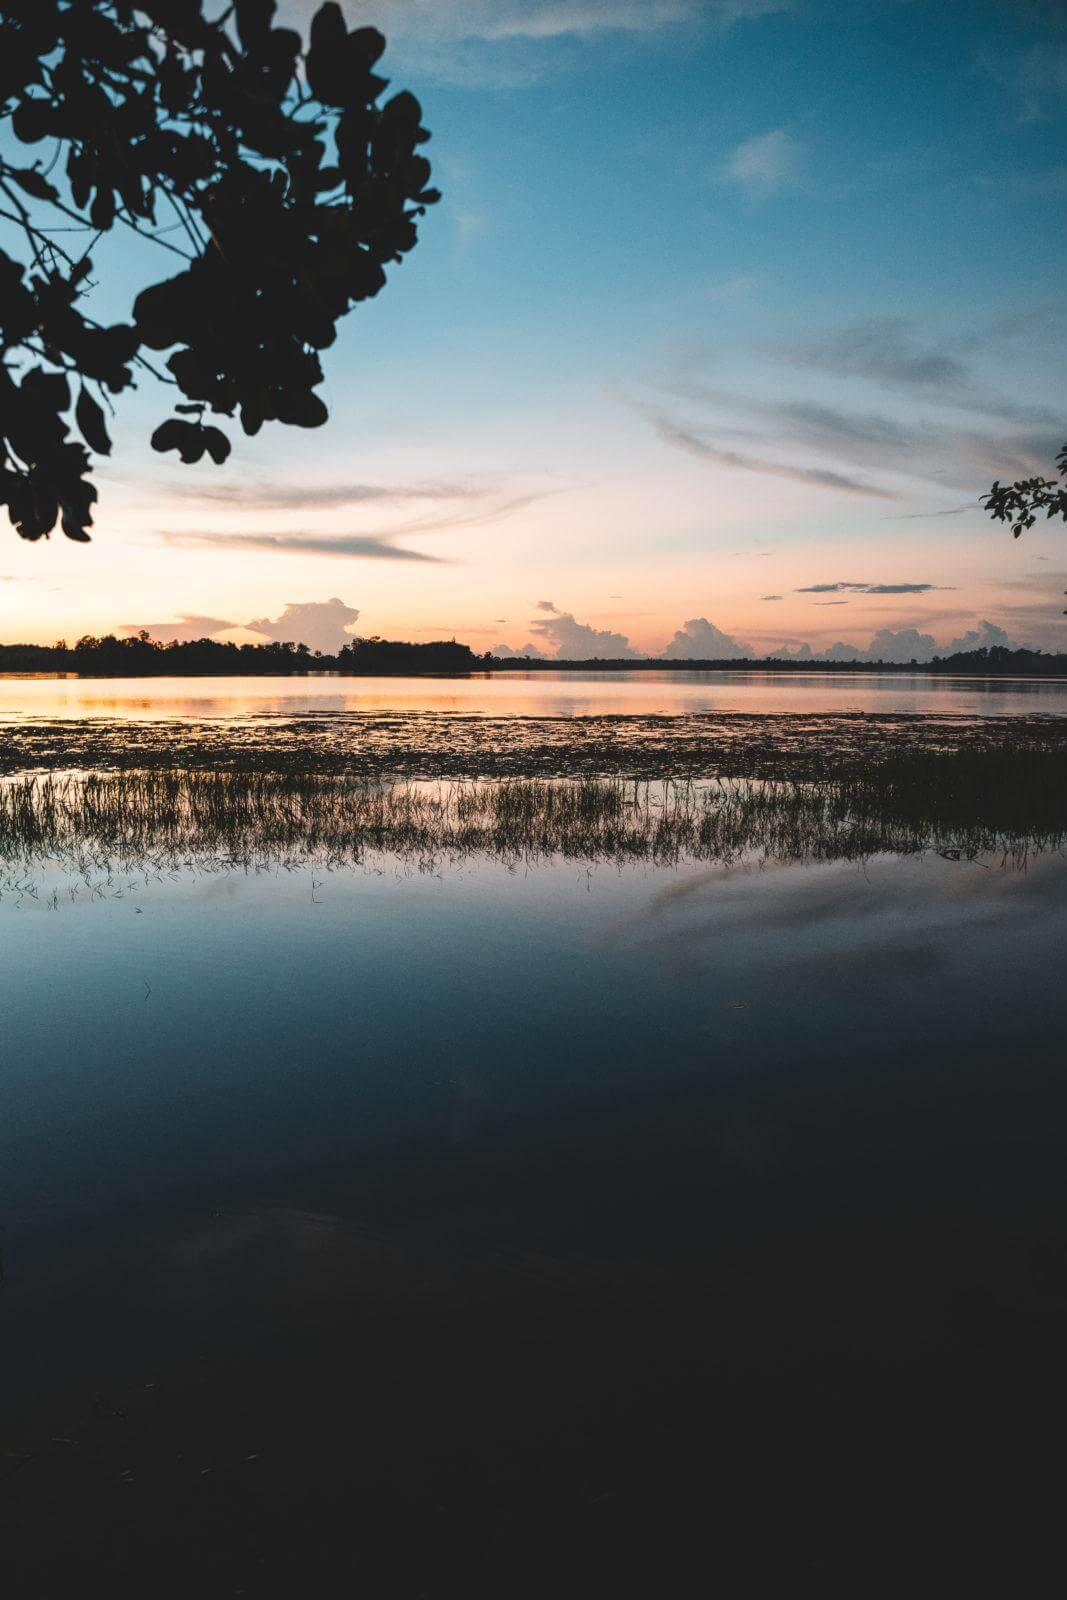 Papua New Guinea's untouched rivers and lakes